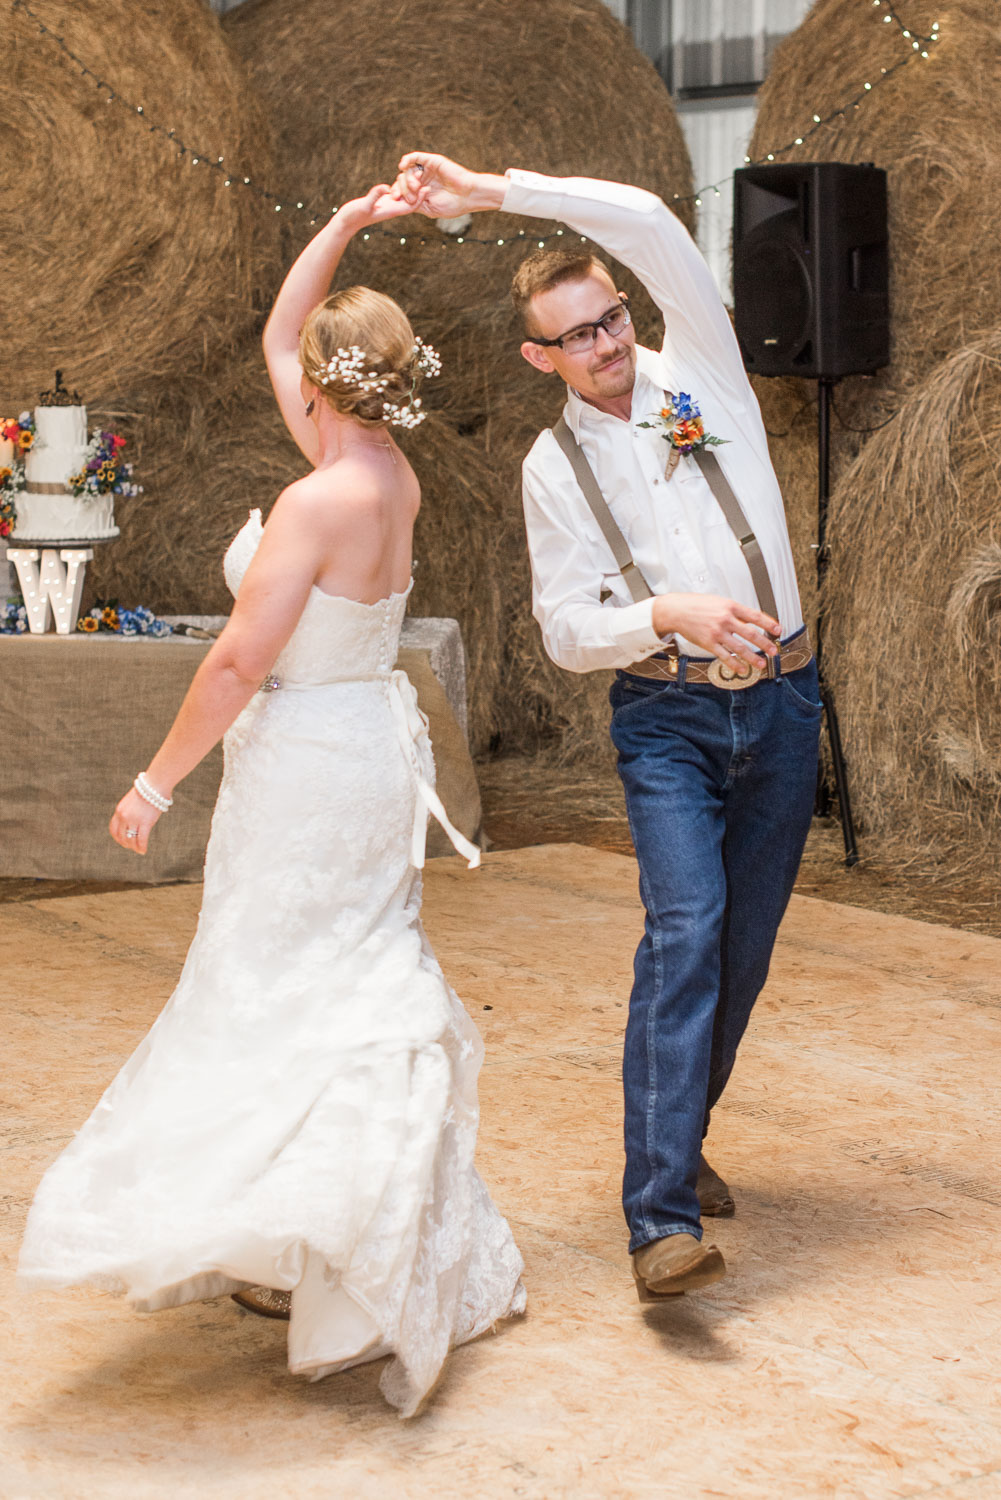 106 first dance in country wedding in texas.jpg